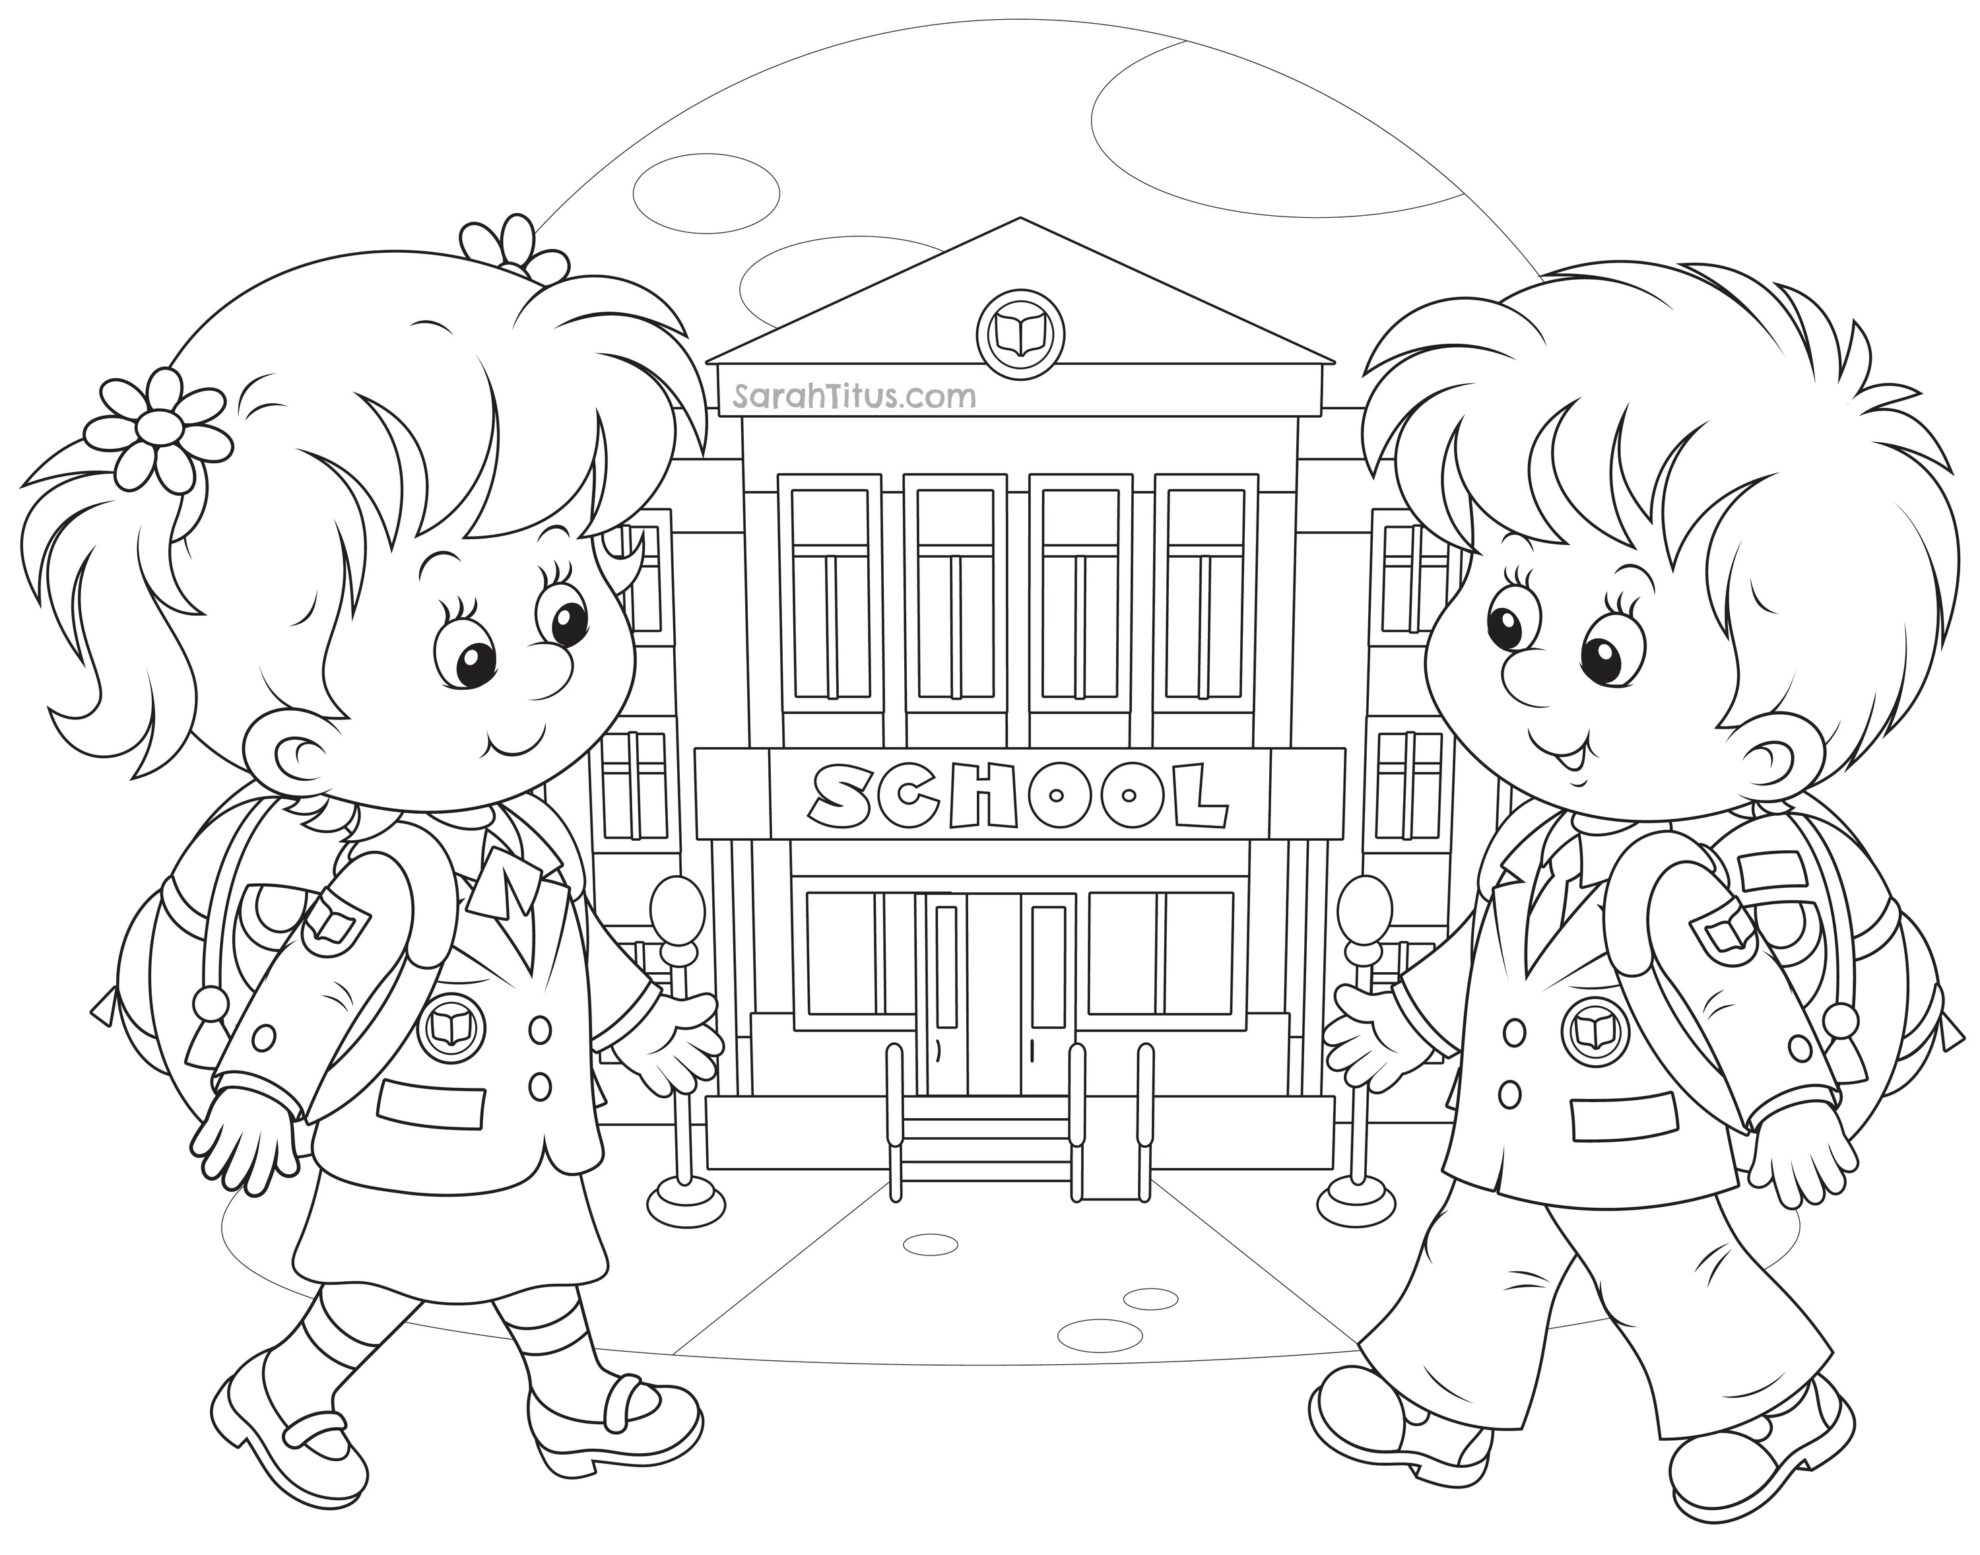 school images coloring pages - photo#29